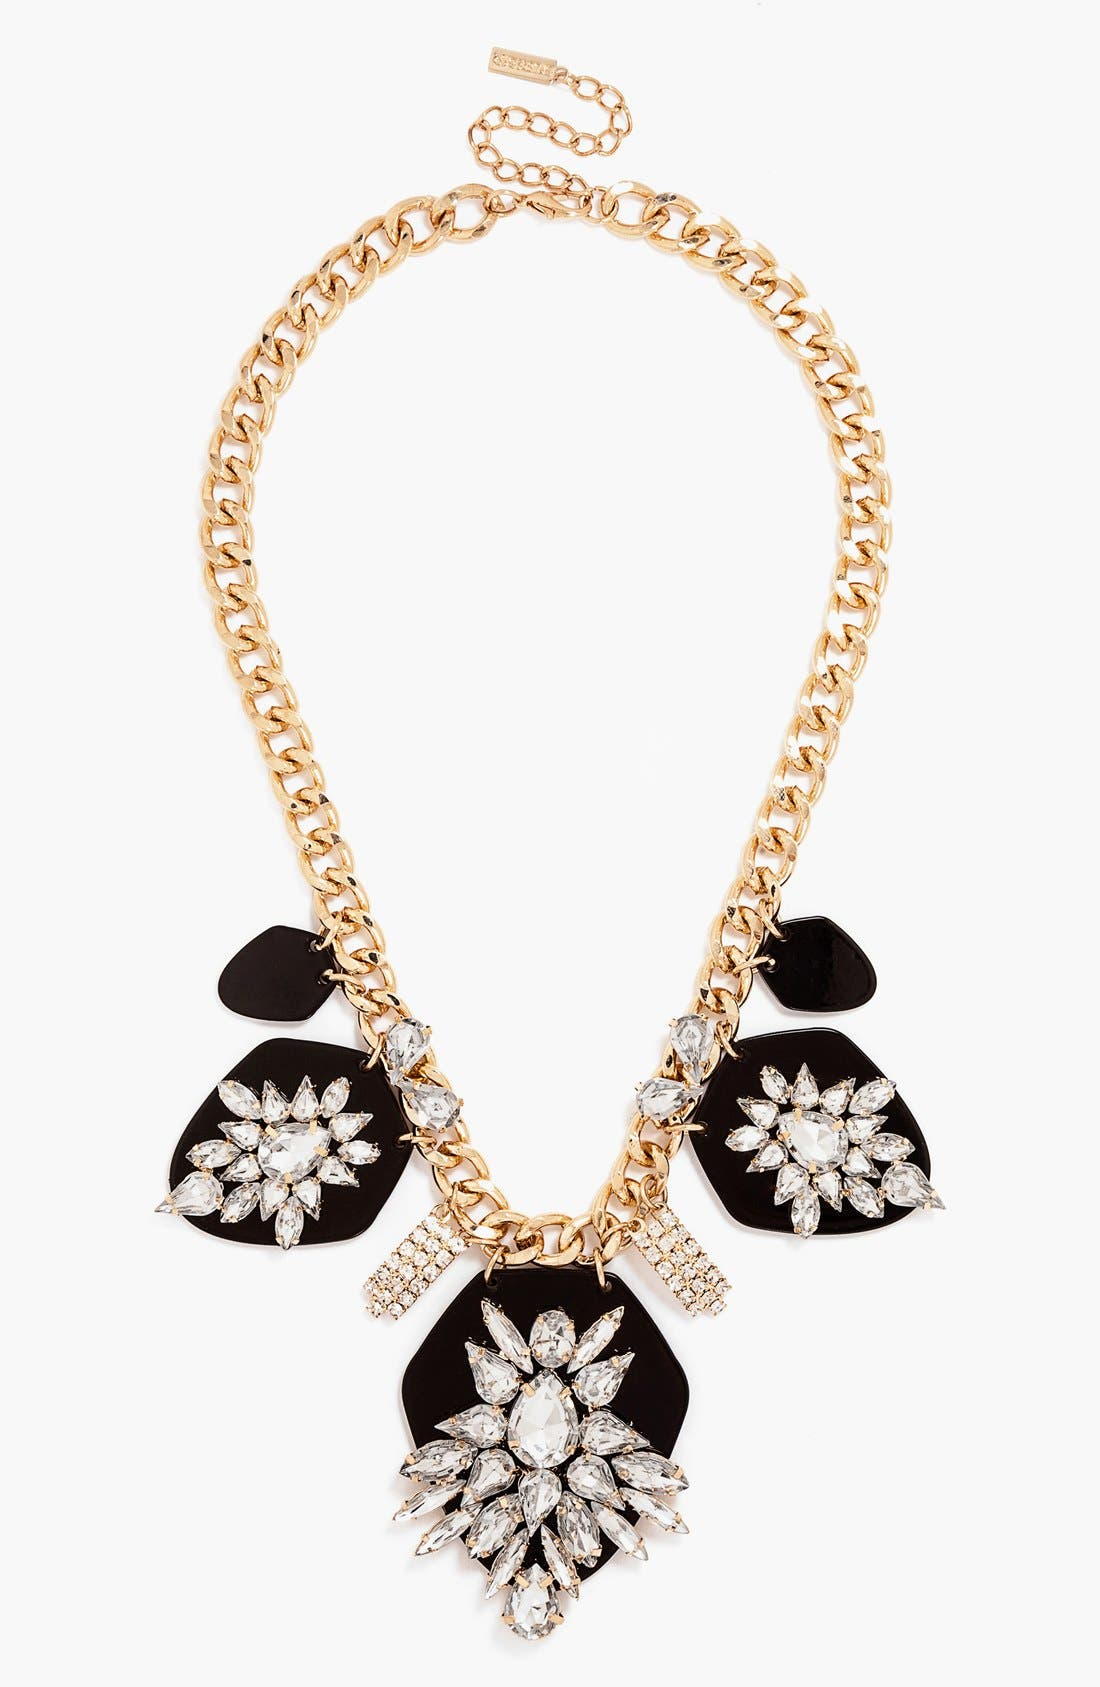 BAUBLEBAR 'Constellation' Frontal Necklace, Main, color, 001